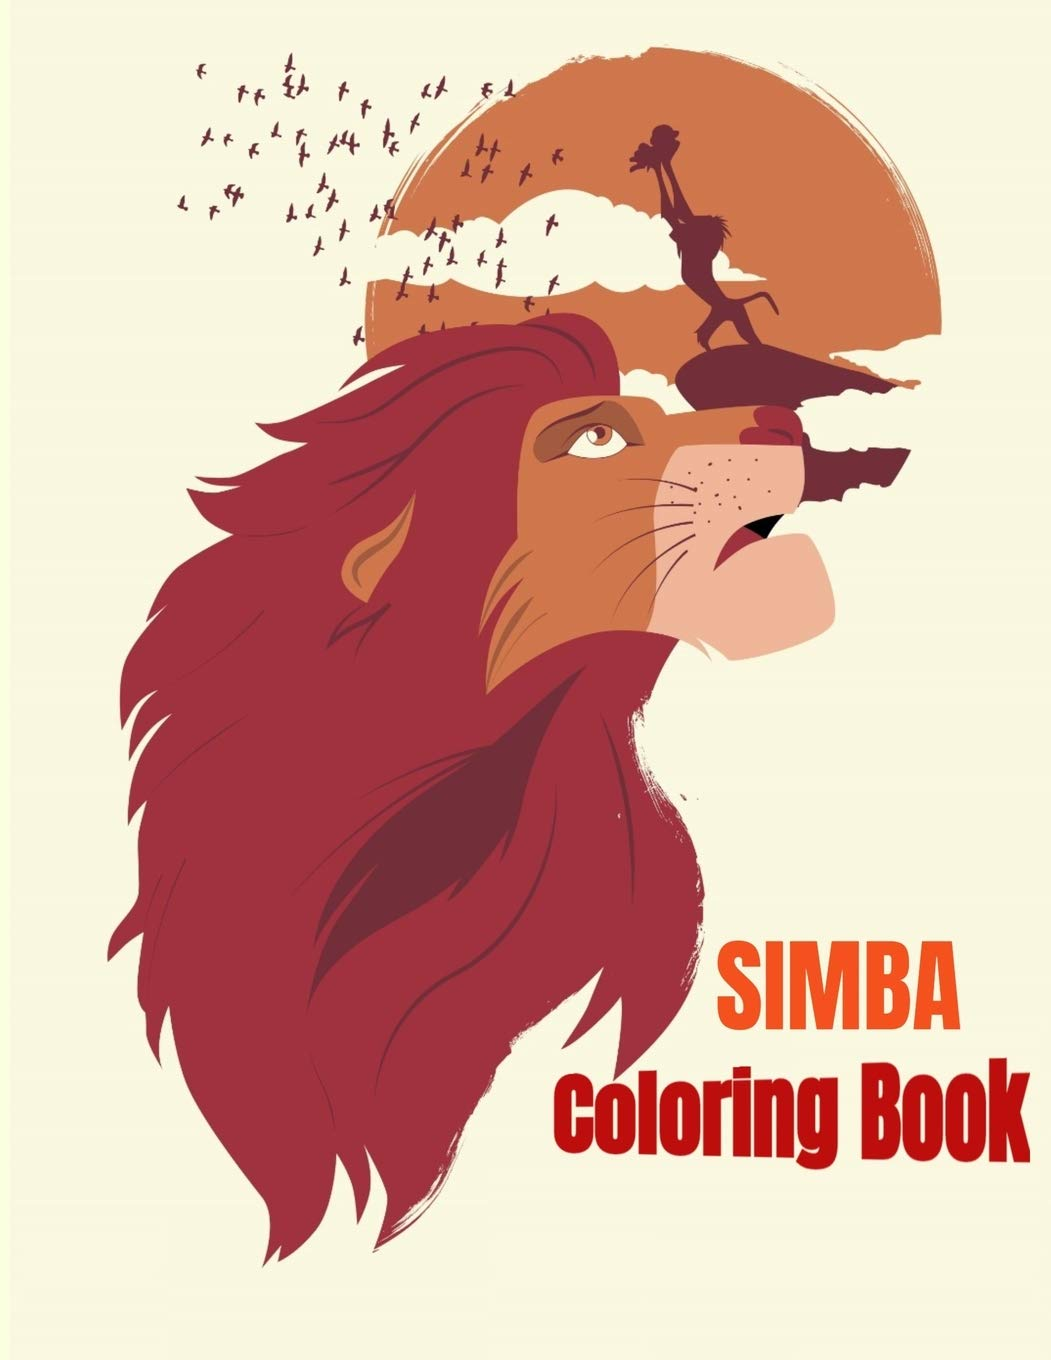 - Amazon.com: Simba Coloring Book: Coloring Book For Kids And Adults